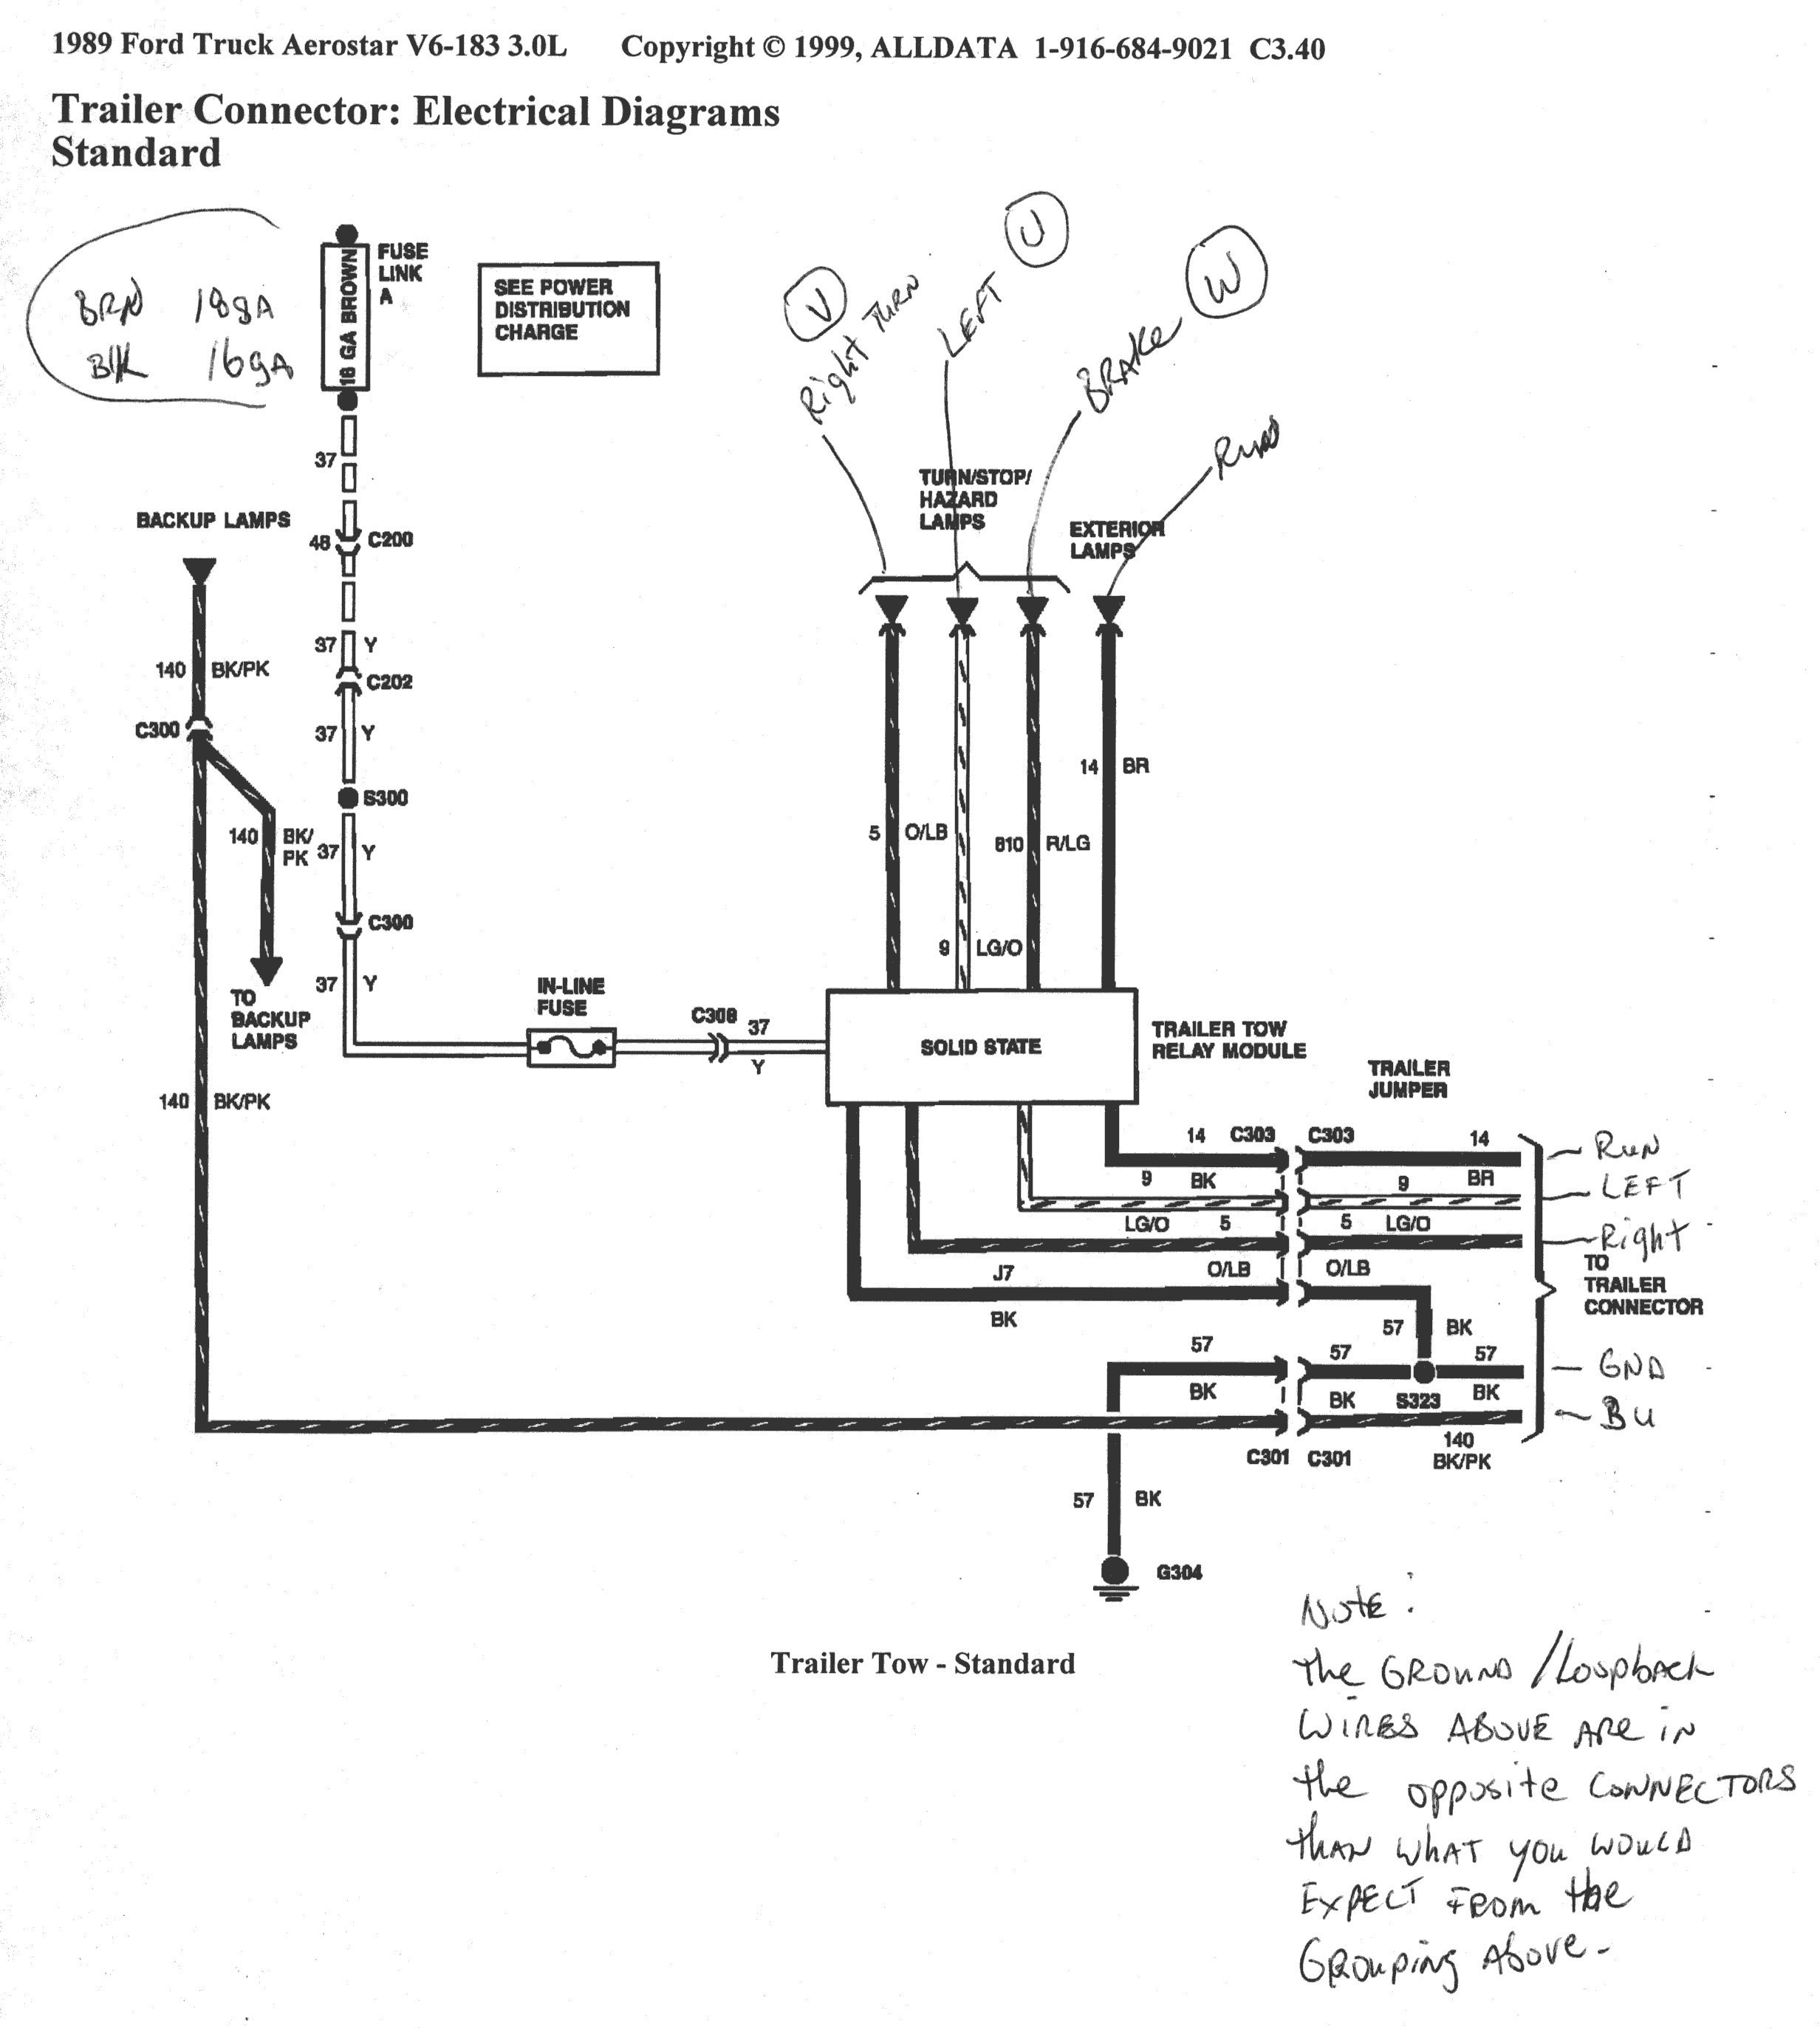 Wiring Diagram for 2000 ford F250 Taillights 155 2000 F250 Lights Wiring Diagram Of Wiring Diagram for 2000 ford F250 Taillights